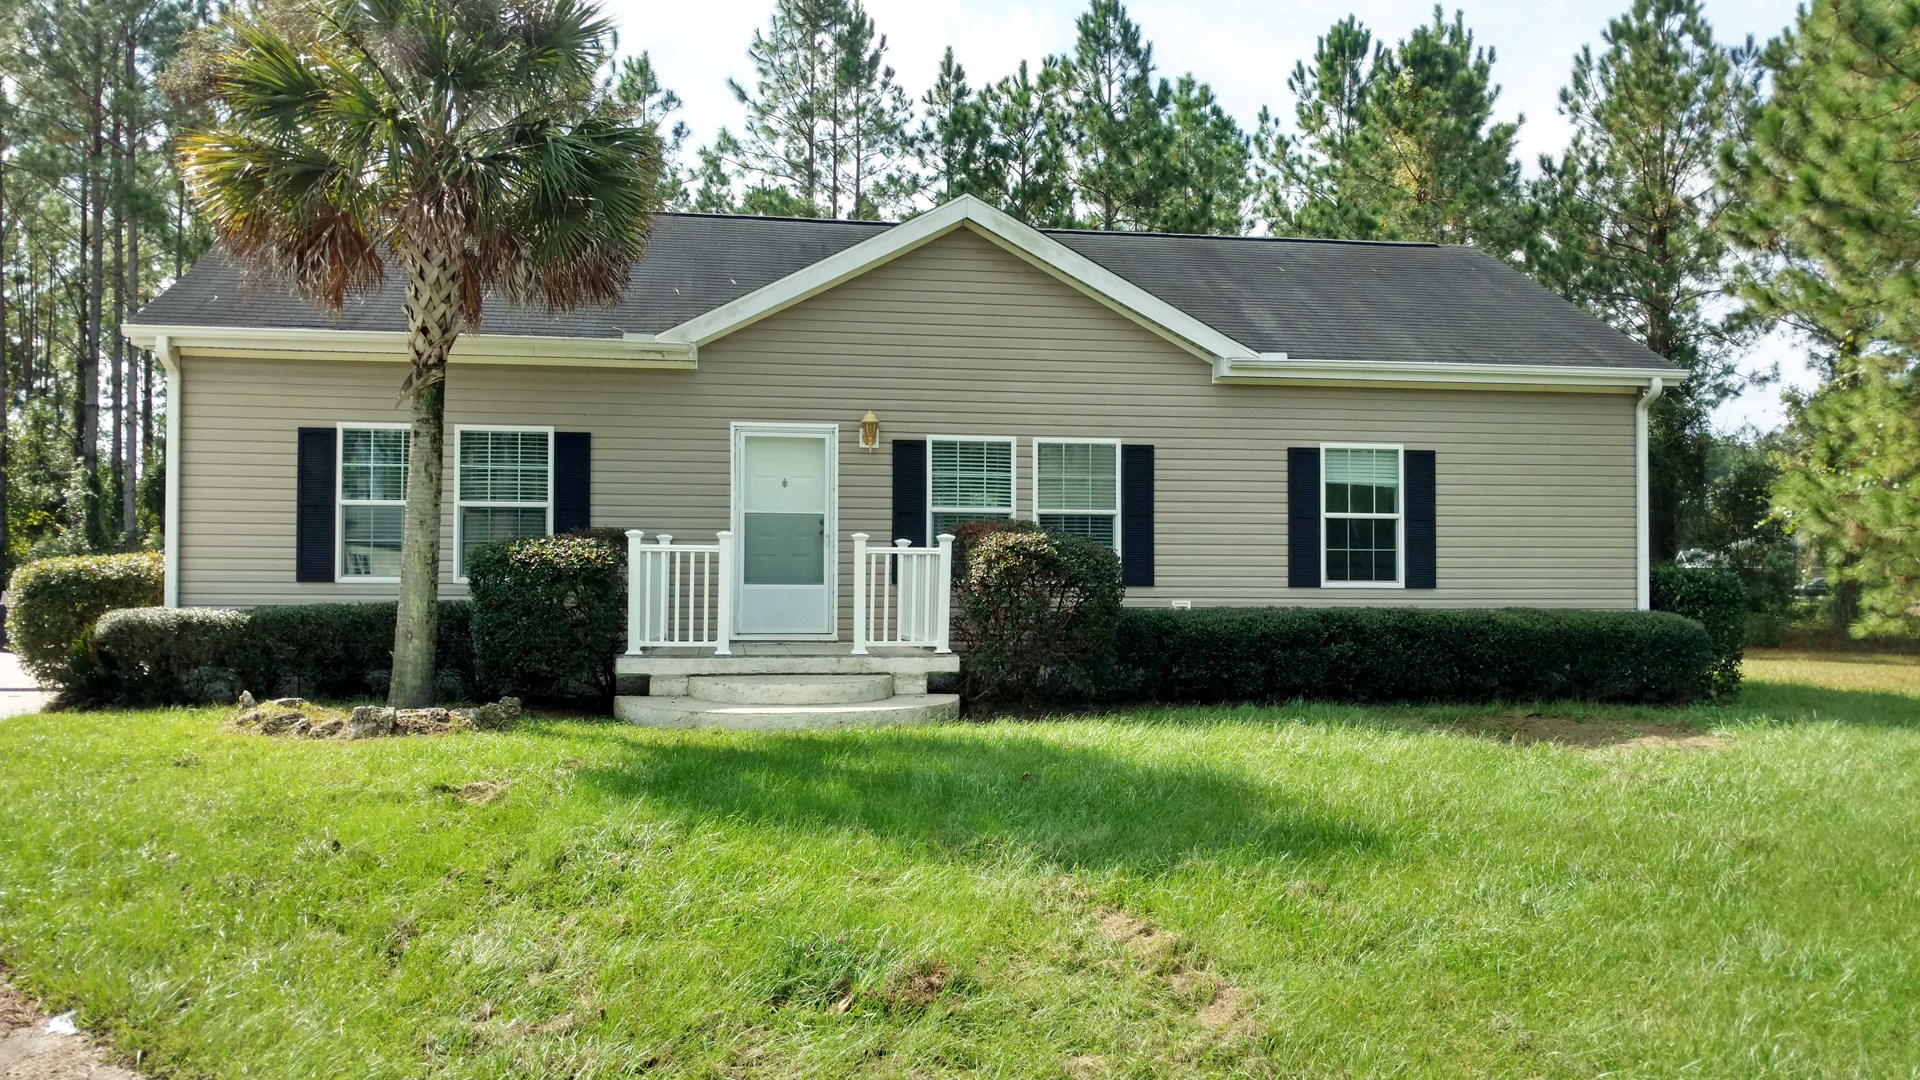 CUTE 3BR/2BA HOUSE FOR SALE IN LAKE CITY, FLORIDA